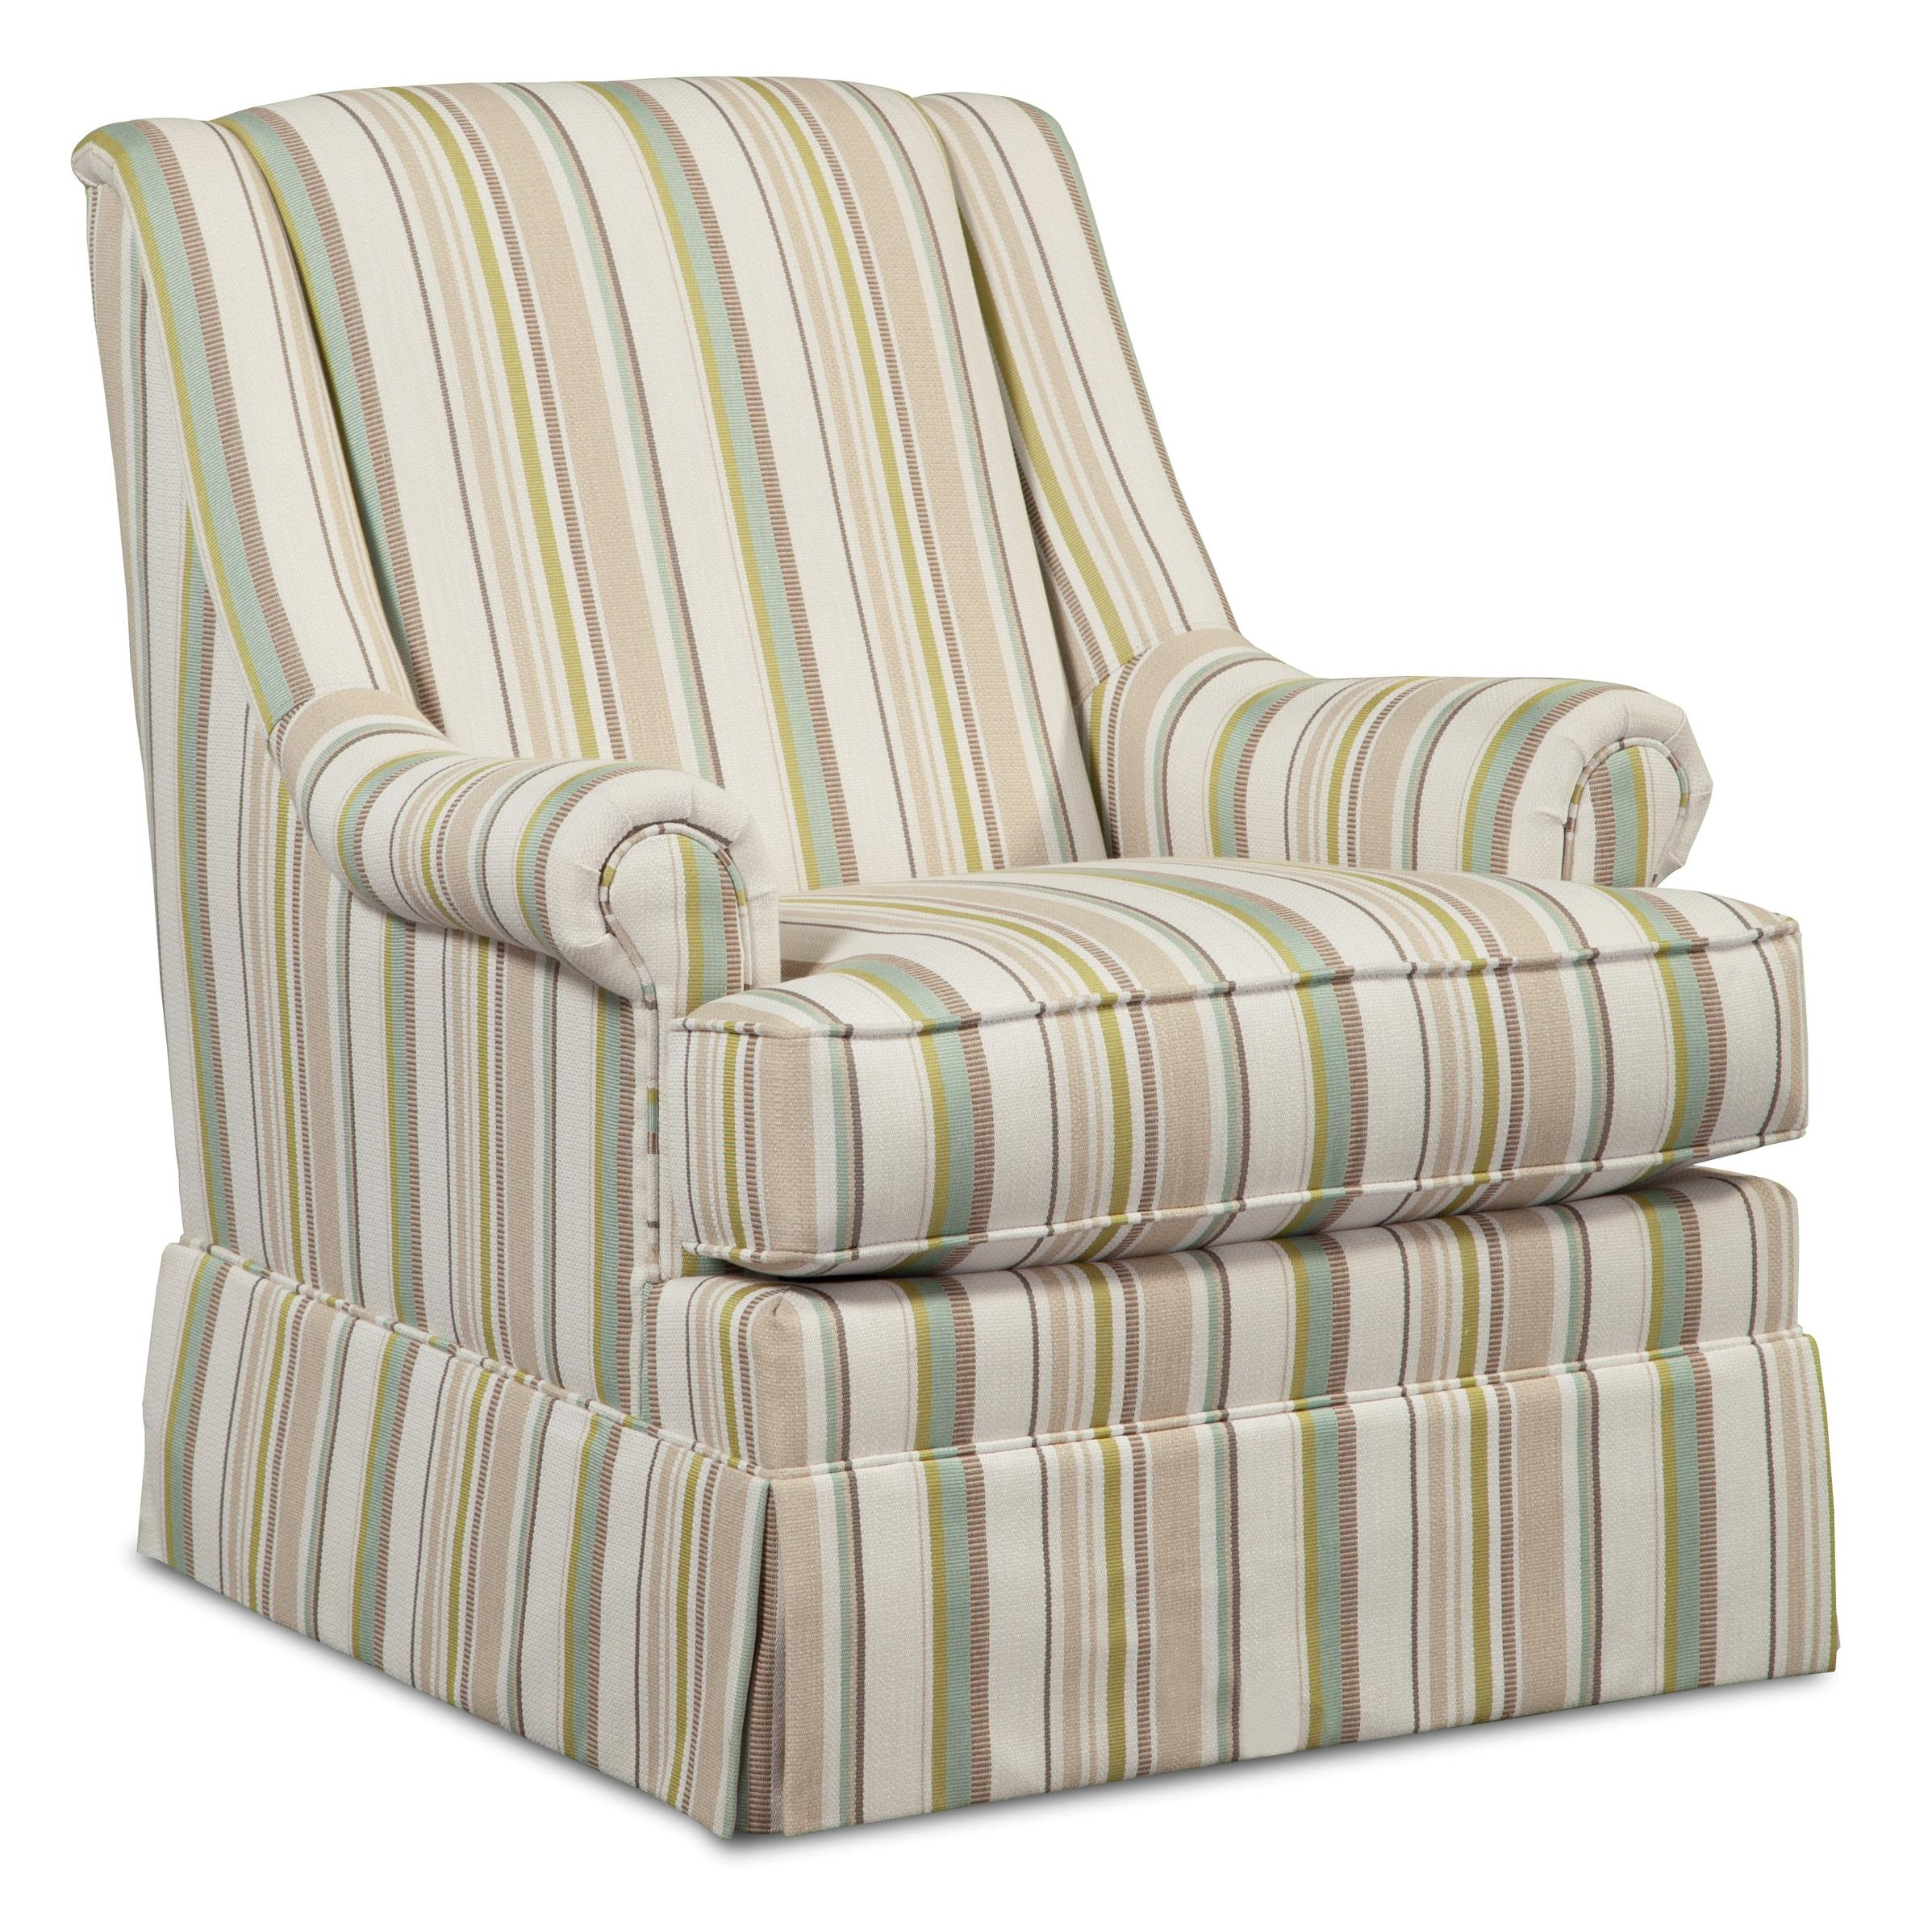 Swivel Chairs Accent Chair by Craftmaster at Lindy's Furniture Company